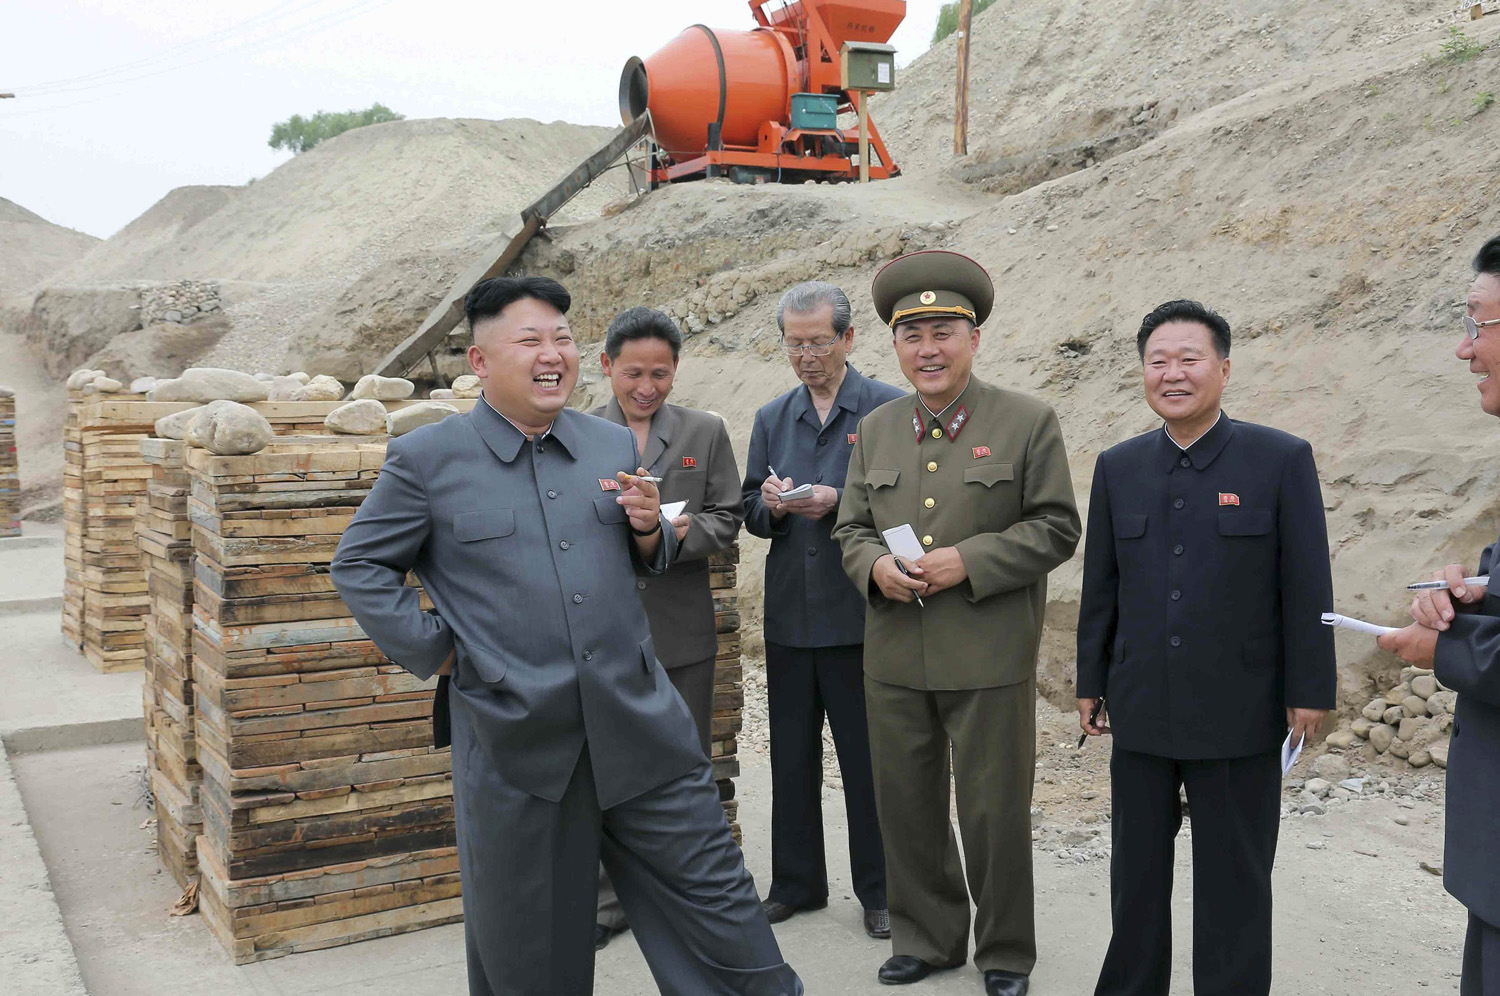 North Korean leader Kim Jong Un smokes a cigarette as he gives guidance on the development of Ssuk Islet in this undated photo released by North Korea's Korean Central News Agency (KCNA) in Pyongyang June 2, 2014.